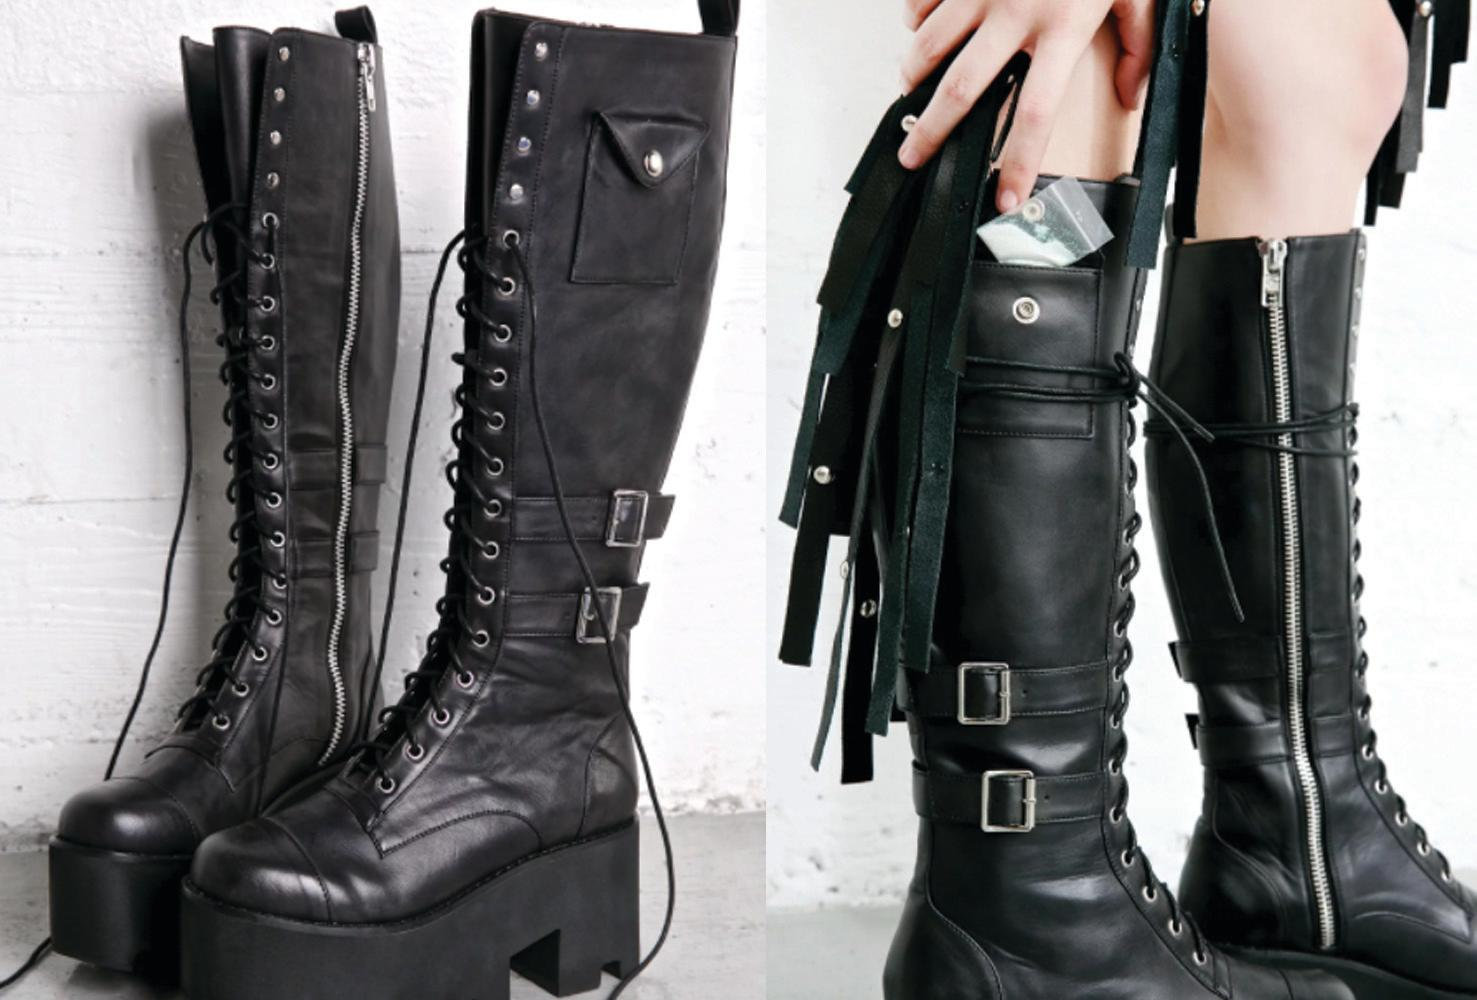 d5c1797d29f89 Boots with a cocaine pocket are actually for sale